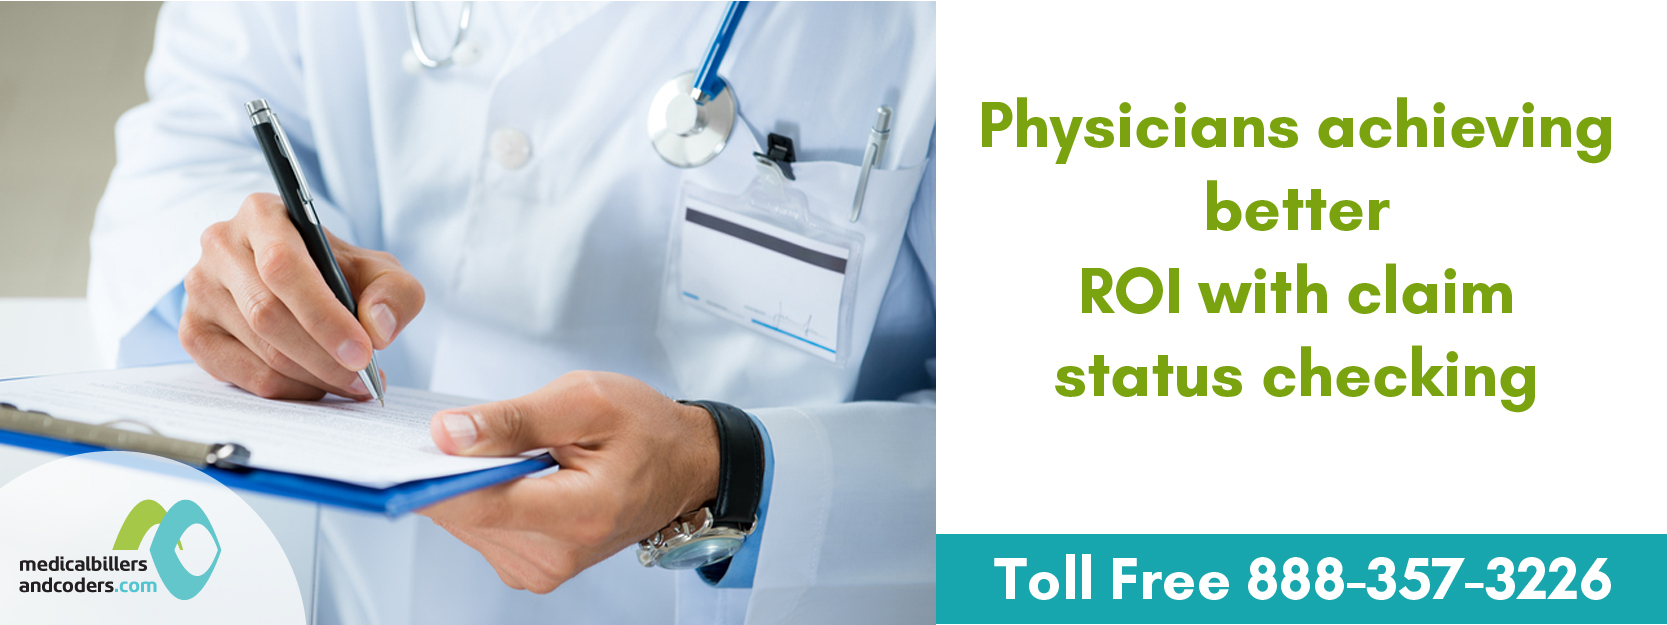 Physicians-Achieving-better-ROI-with-claim-status-checking.jpg